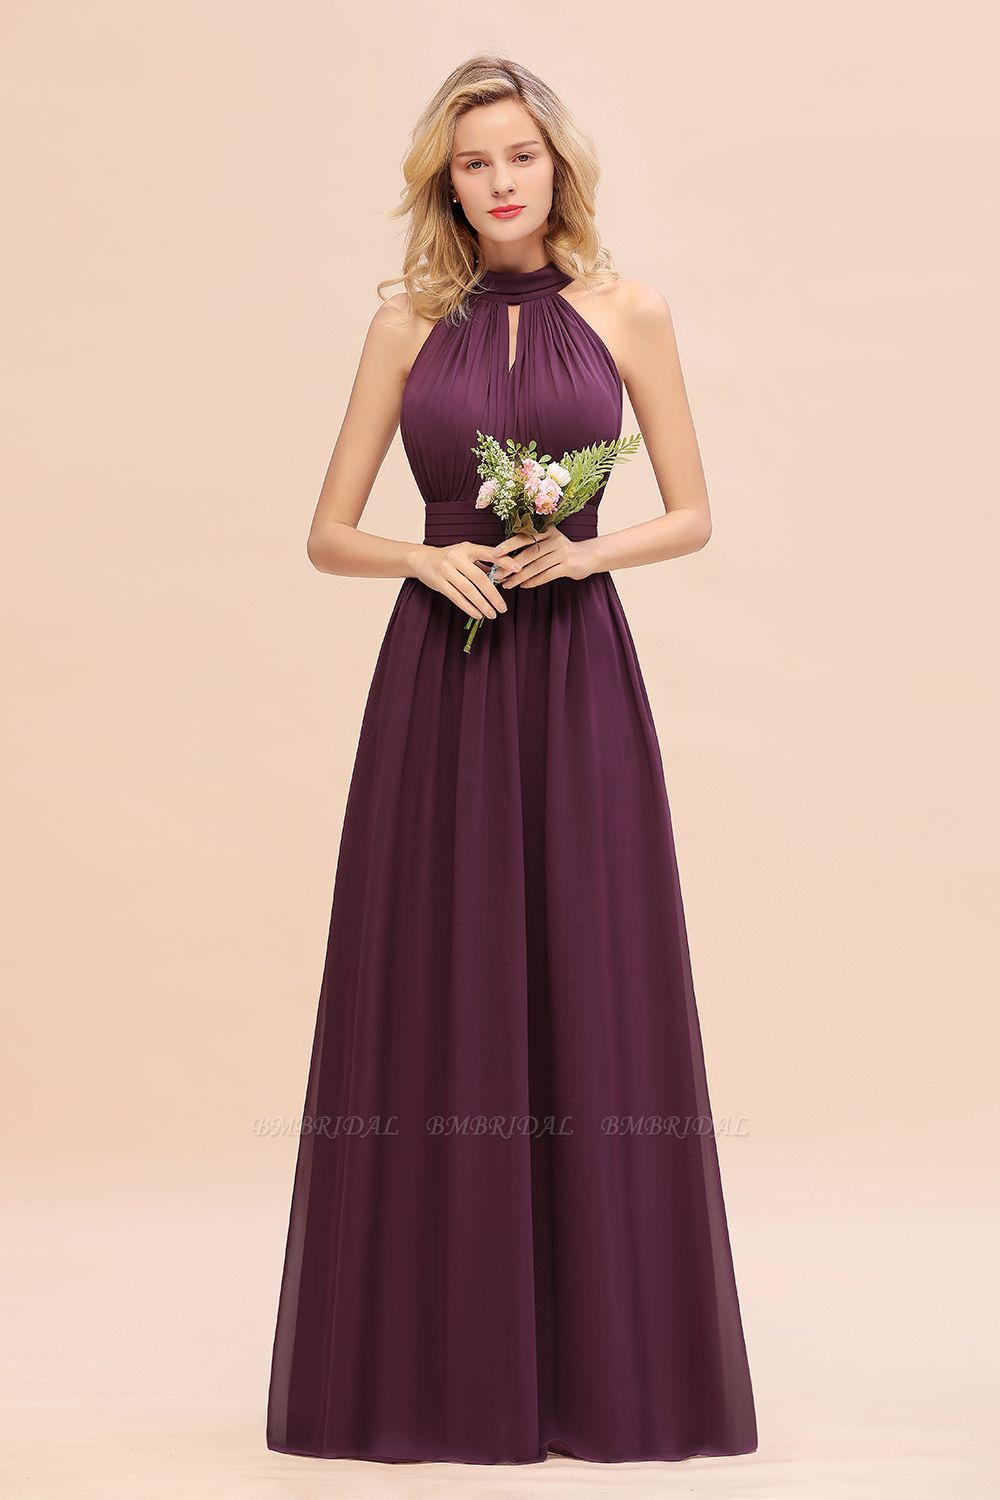 Glamorous High-Neck Halter Bridesmaid Affordable Dresses with Ruffle